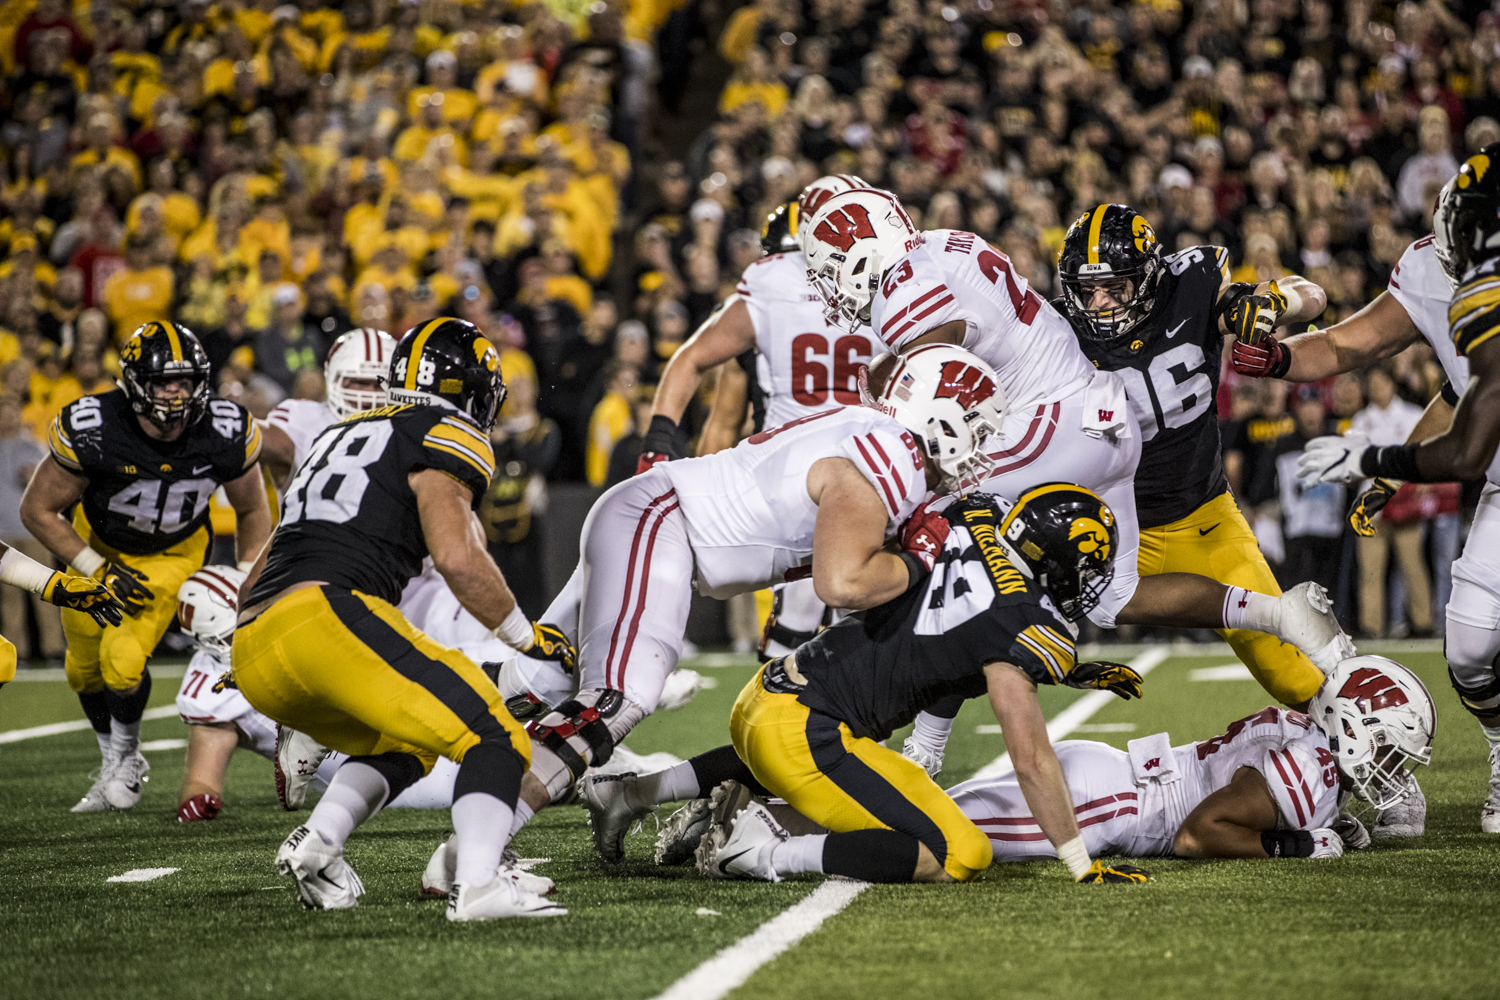 Wisconsin running back Jonathan Taylor carries the ball during Iowa's game against Wisconsin at Kinnick Stadium on Saturday, September 22, 2018. The Badgers defeated the Hawkeyes 28-17.